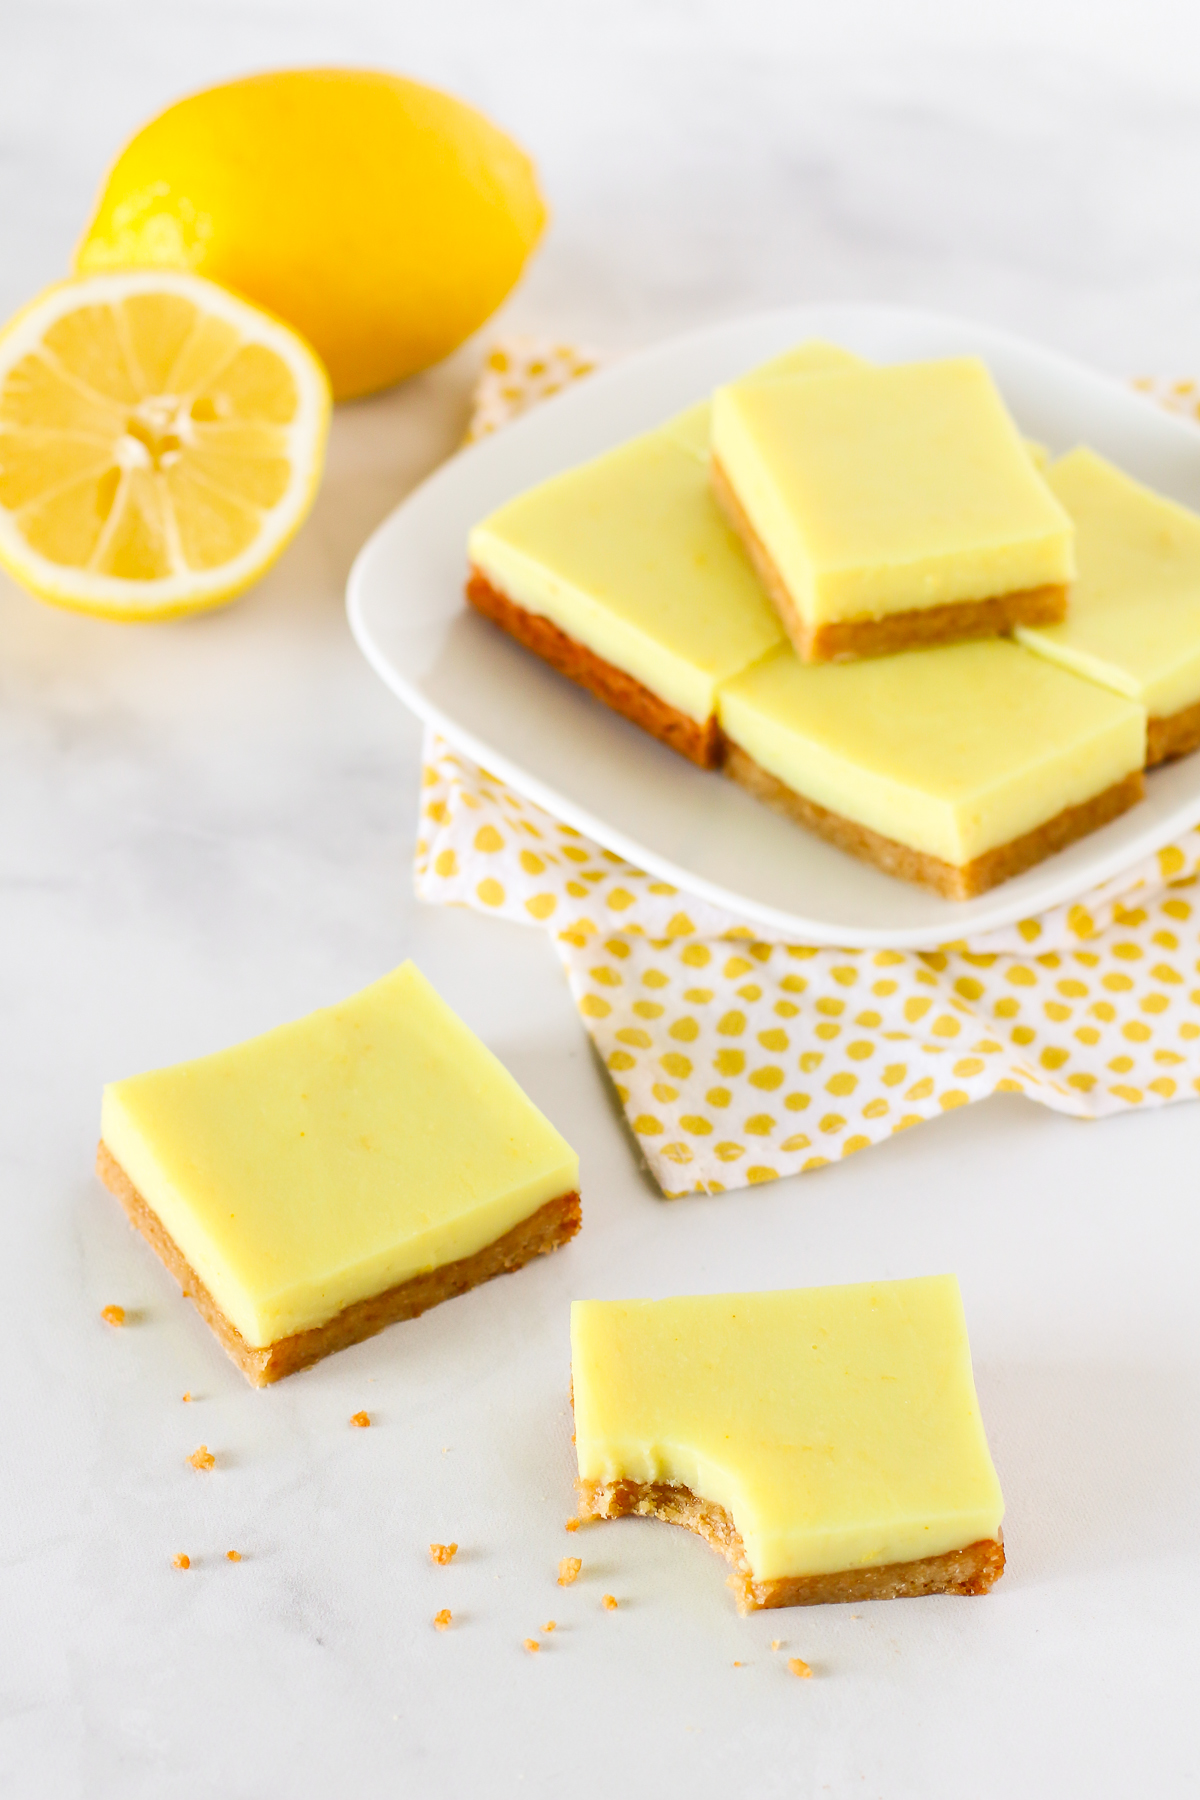 Gluten Free Vegan Lemon Bars. Chewy almond crust with a layer of creamy lemon deliciousness make these lemon bars simply irresistible!